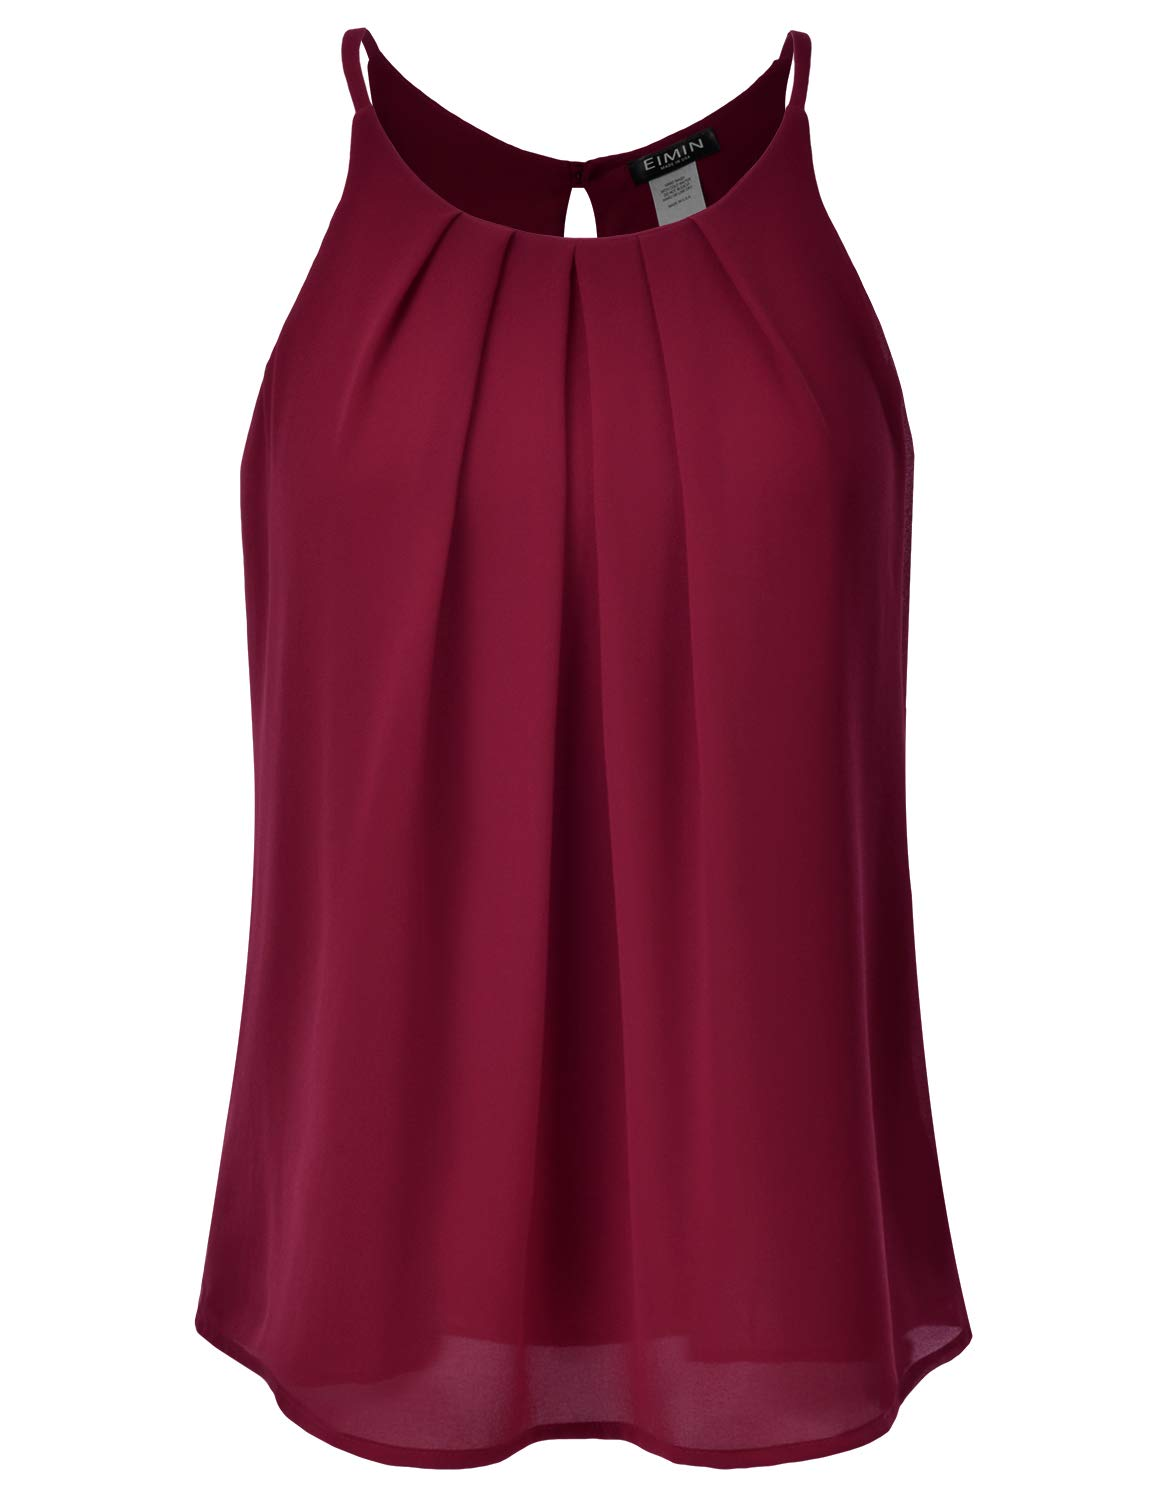 EIMIN Women's Crewneck Pleated Front Double Layered Chiffon Cami Tank Top Burgundy M